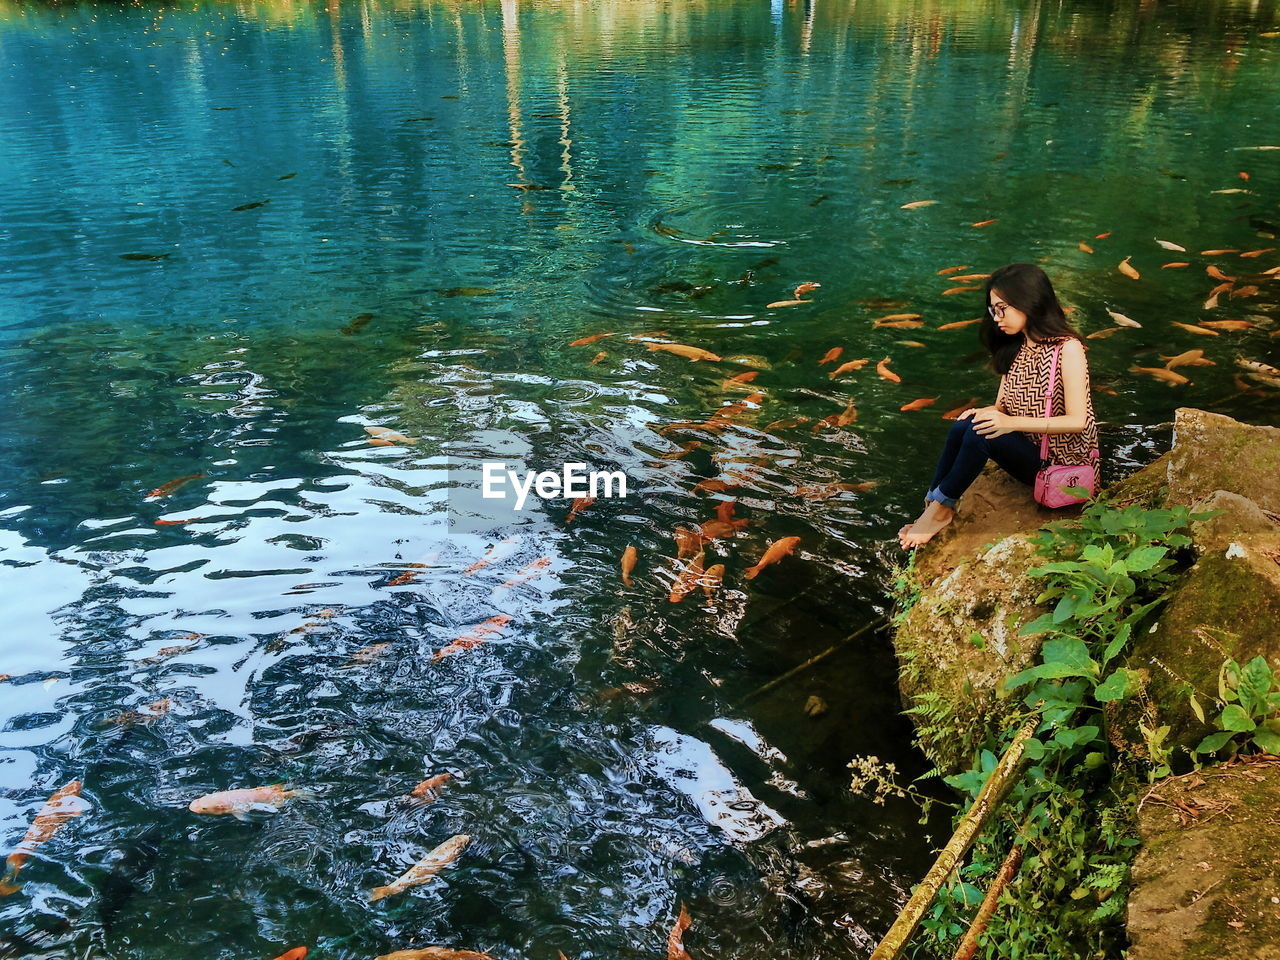 Woman looking at fishes in lake